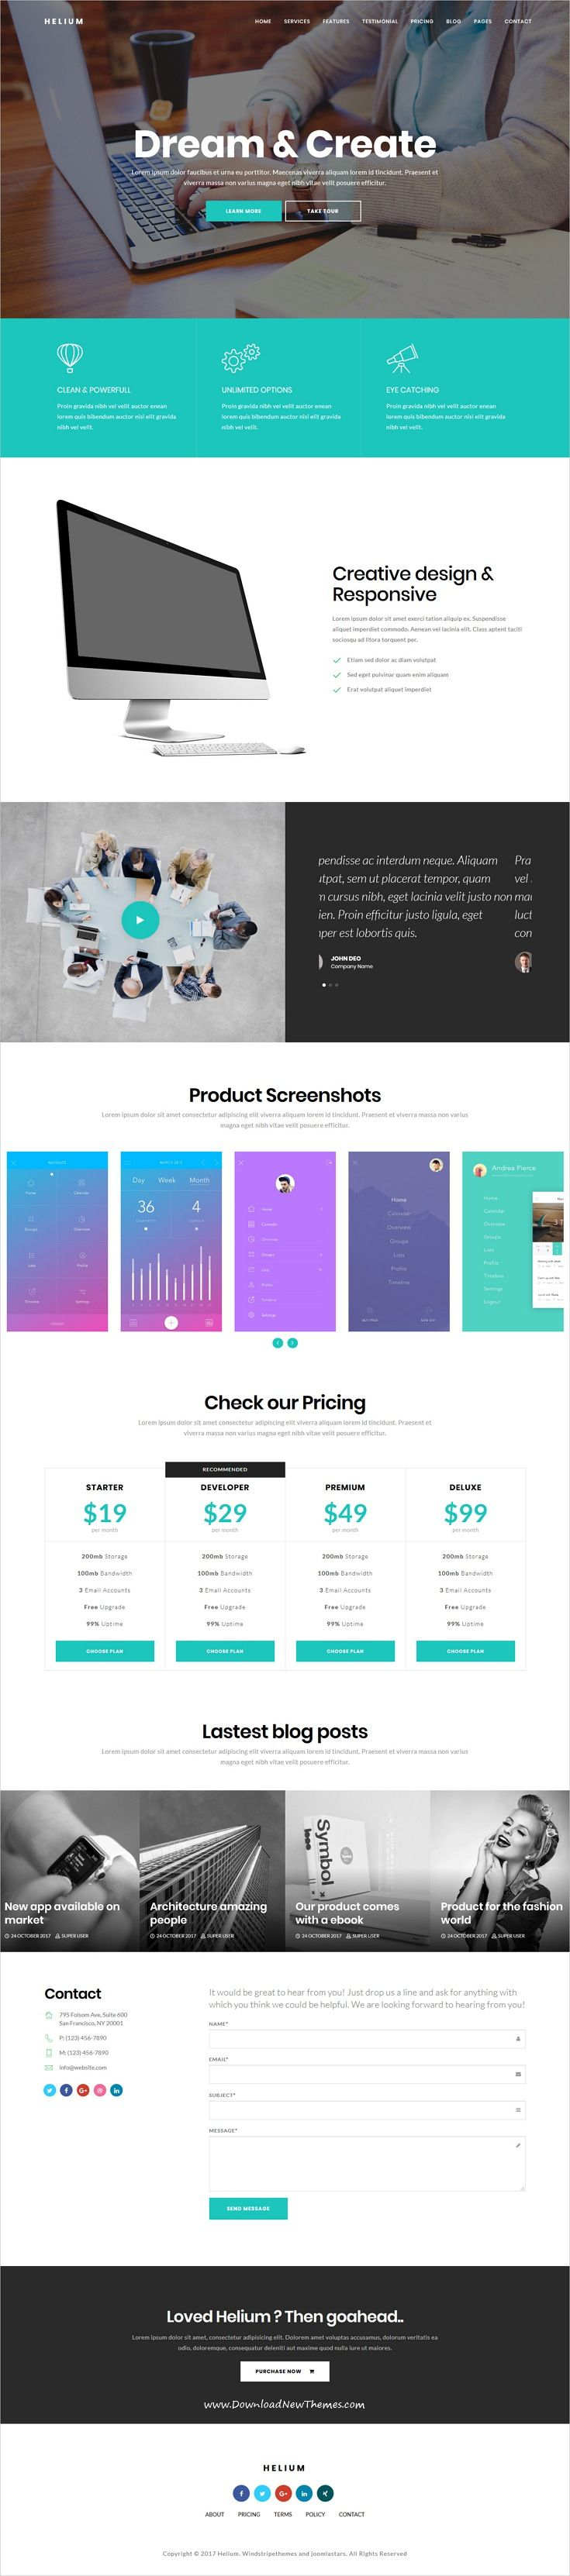 Opstera By Stanislav Hristov Via Behance Web Design Inspiration Interface Design User Interface Design